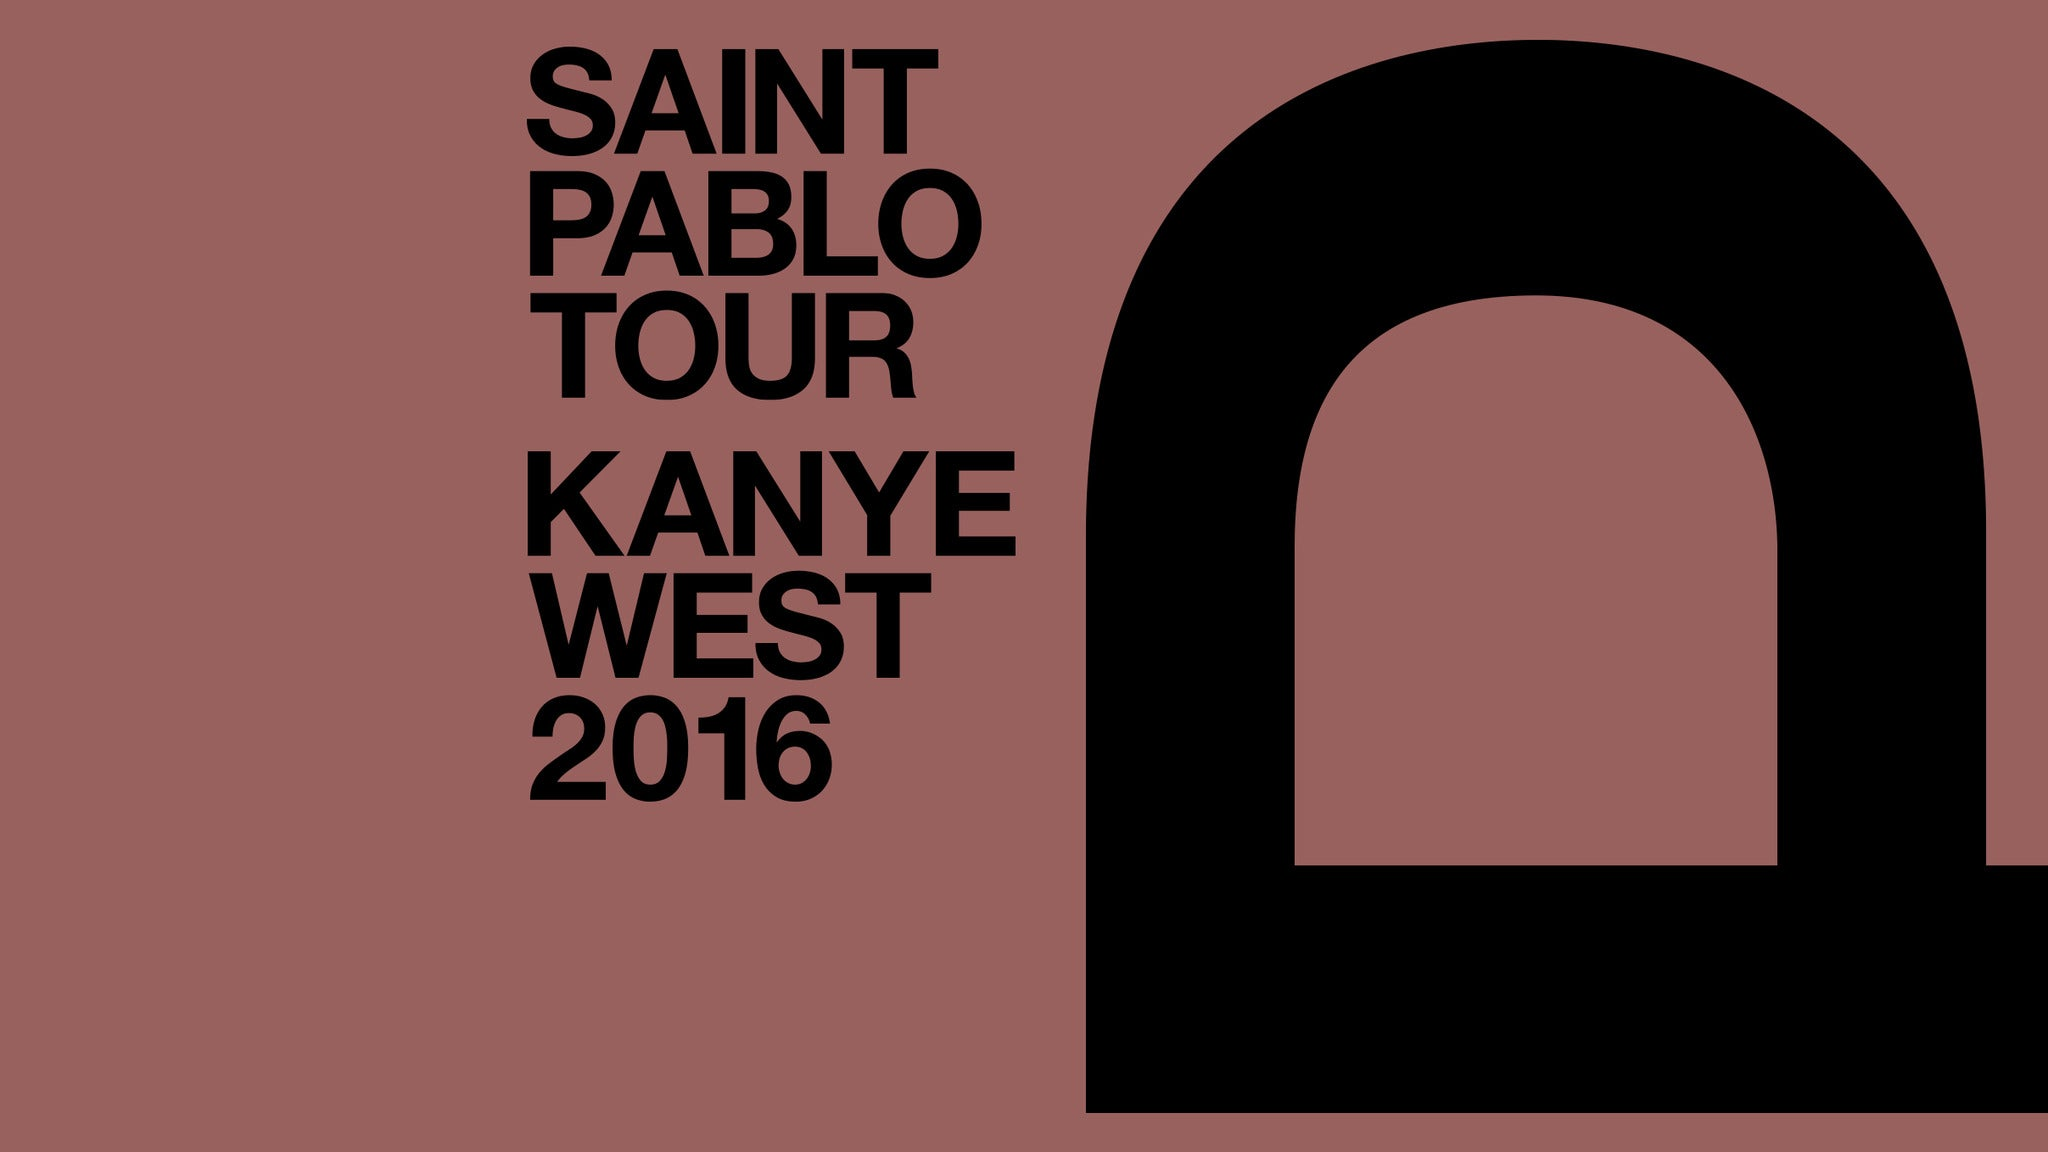 Kanye West: The Saint Pablo Tour at Amway Center